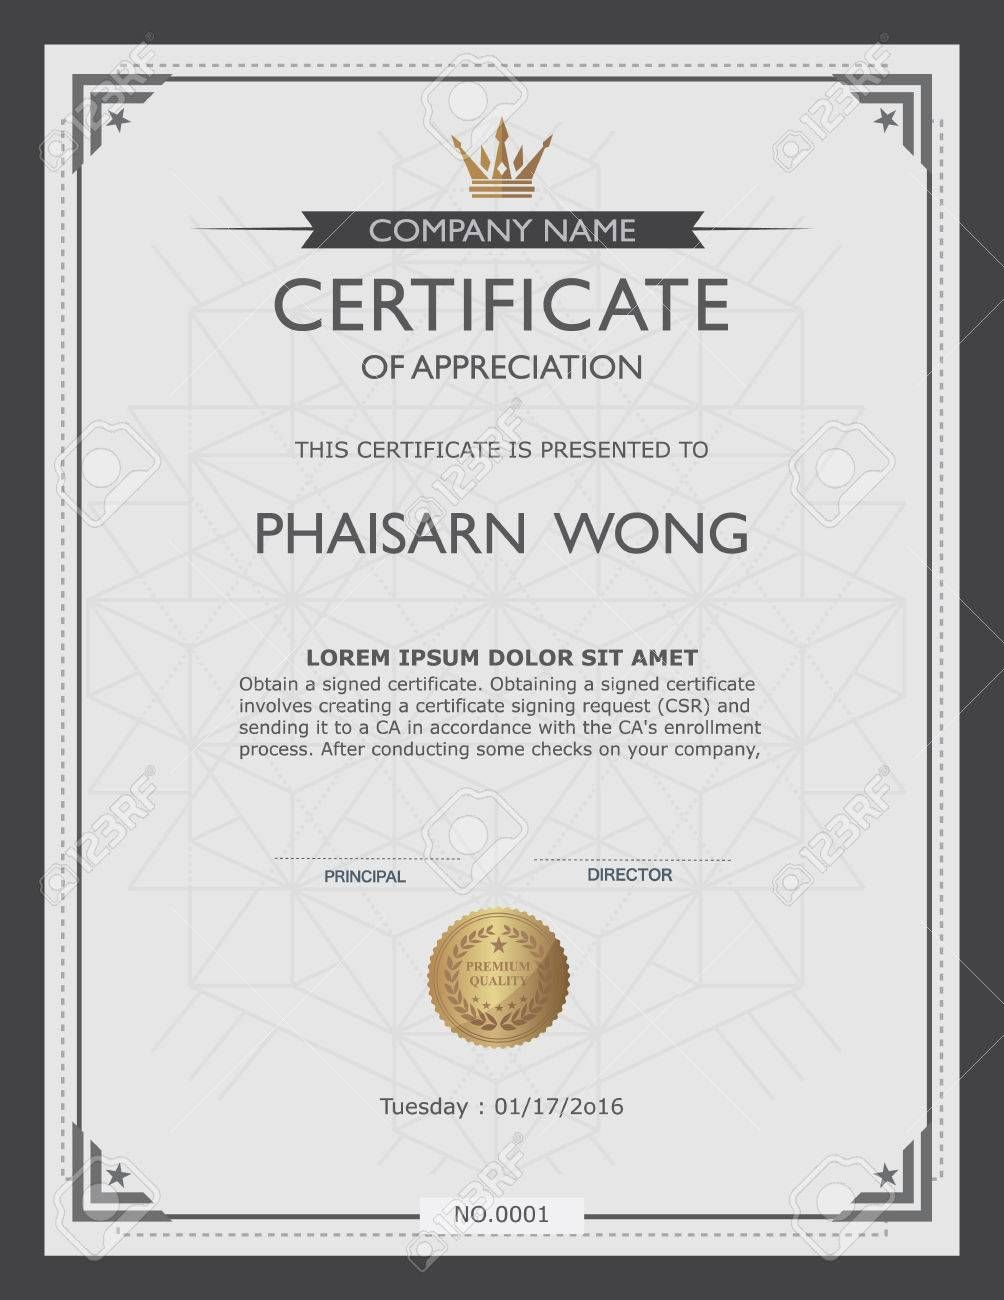 Certificate Template And Element Royalty Free Cliparts Vectors And Stock Illustratio Certificate Templates Certificate Design Inspiration Certificate Design Where to buy award certificates